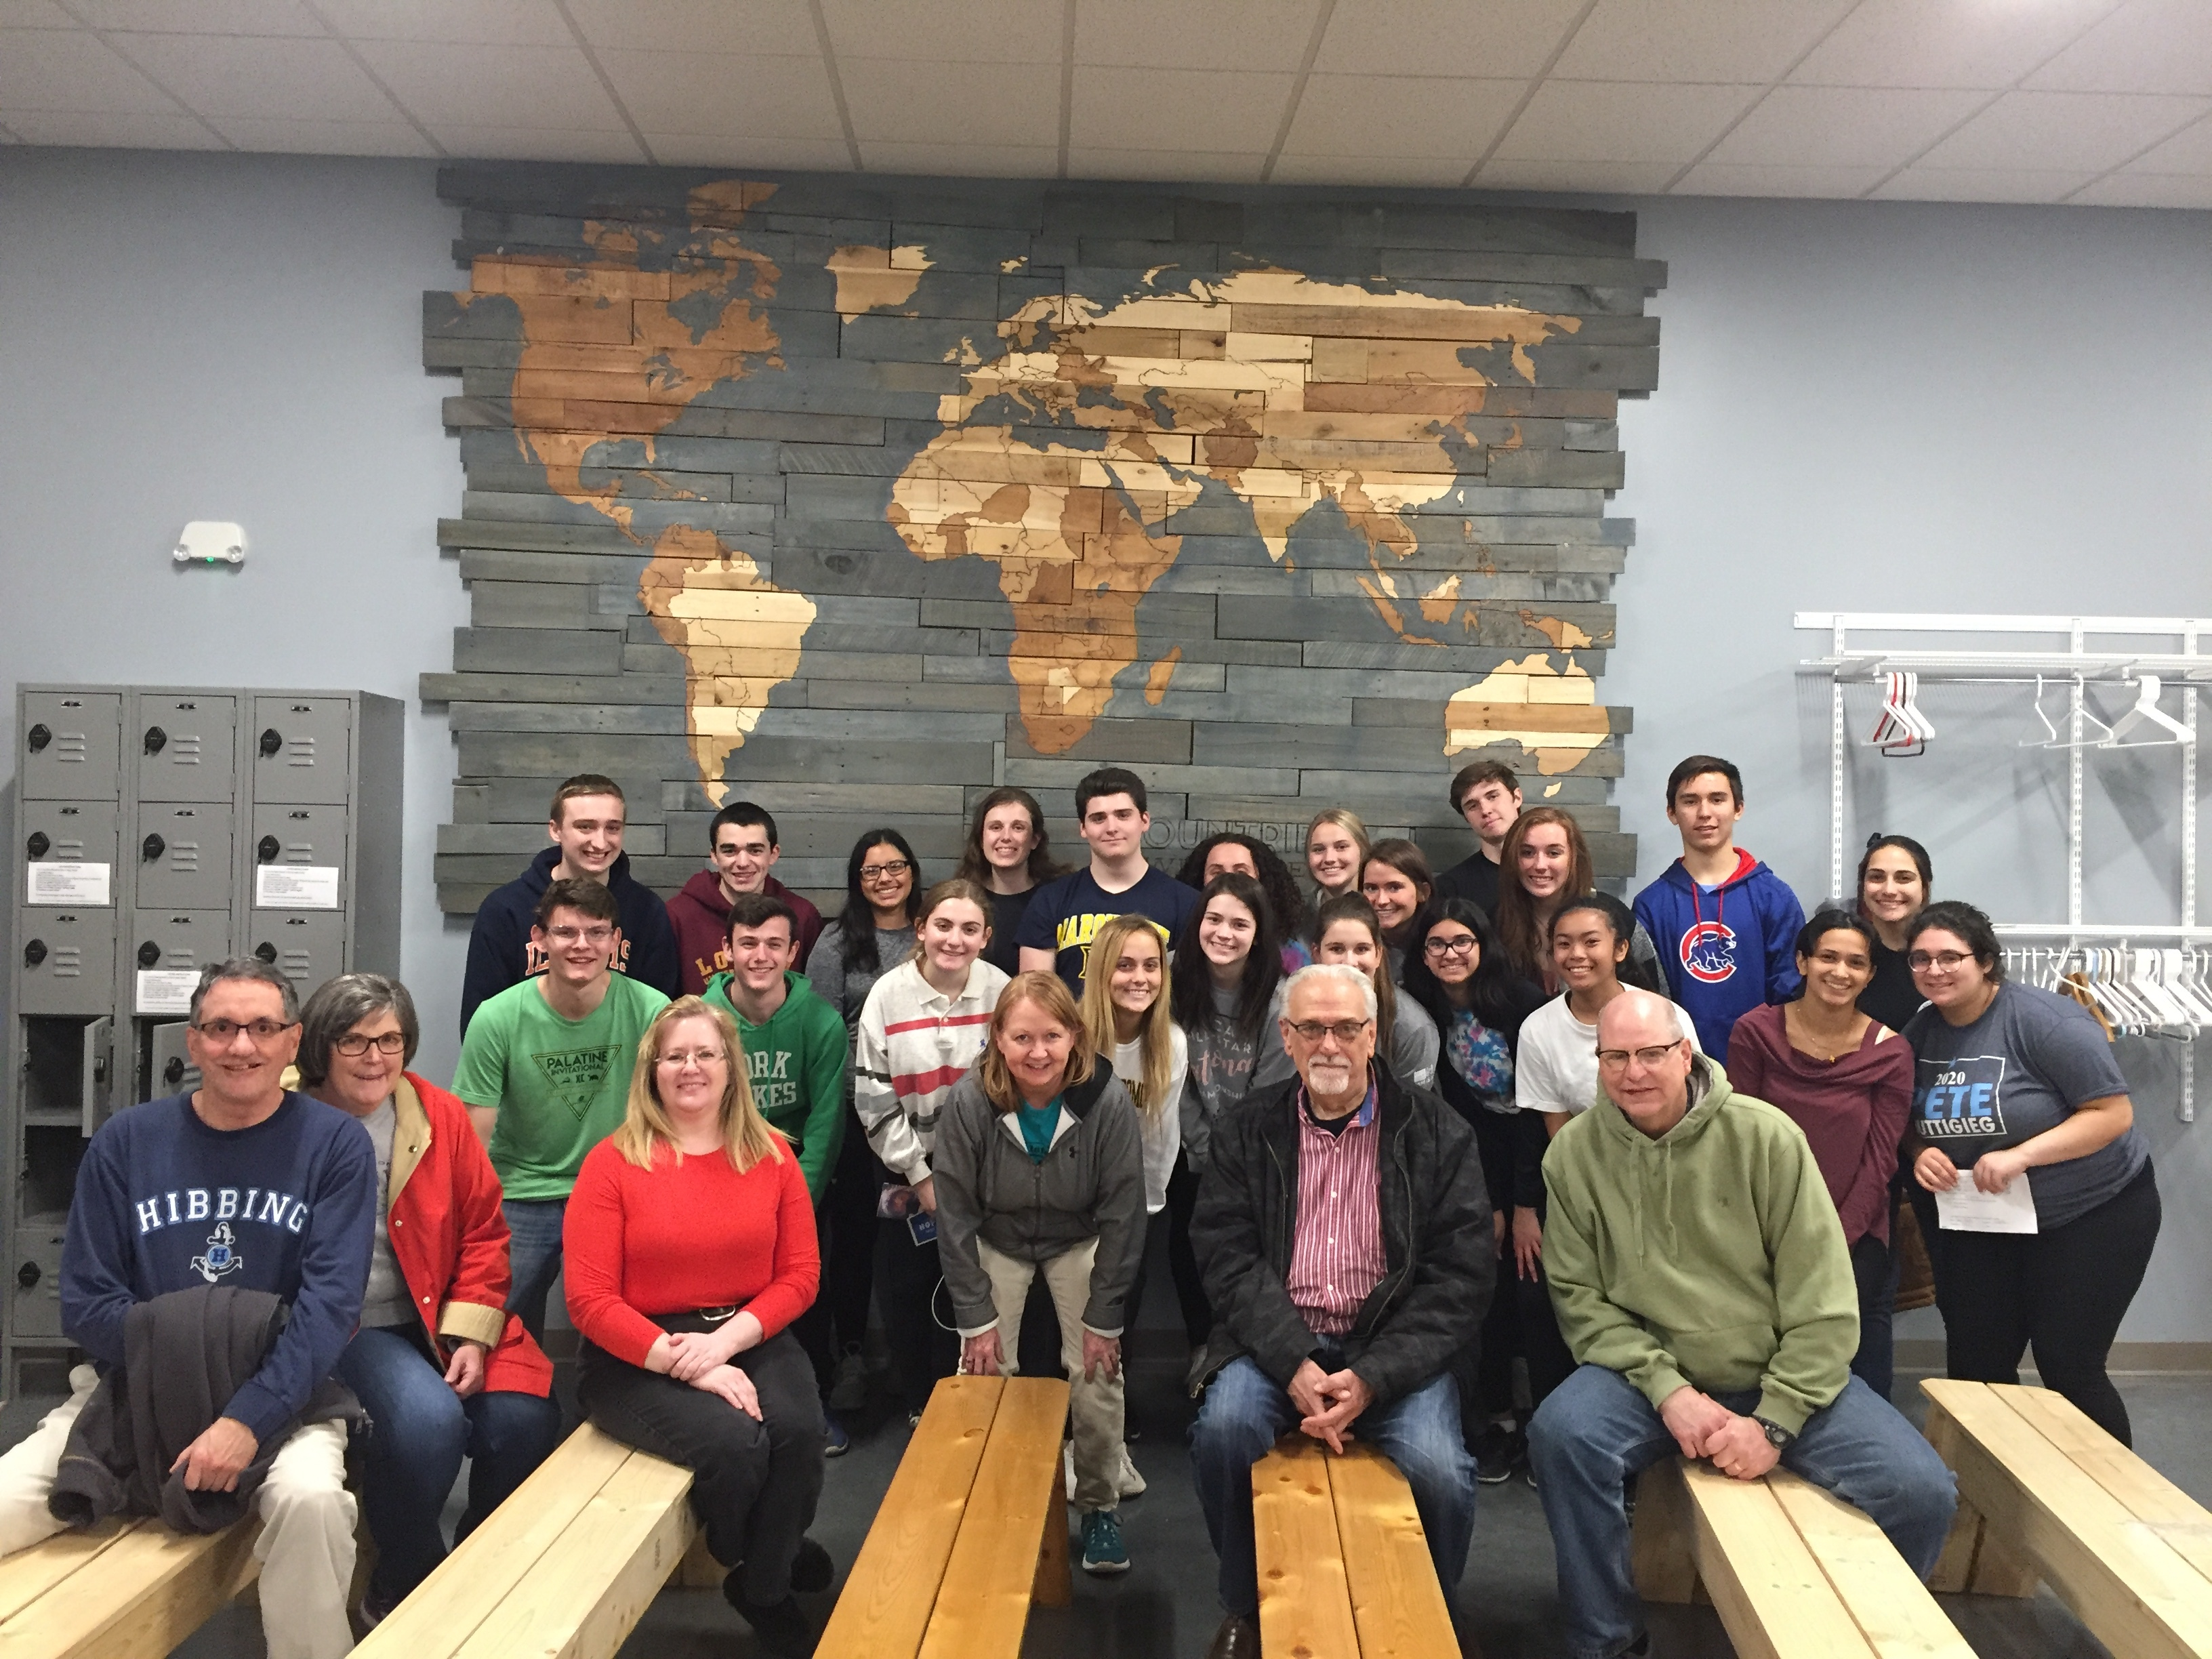 Rotarians and Interact Club members at Feed My Starving Children